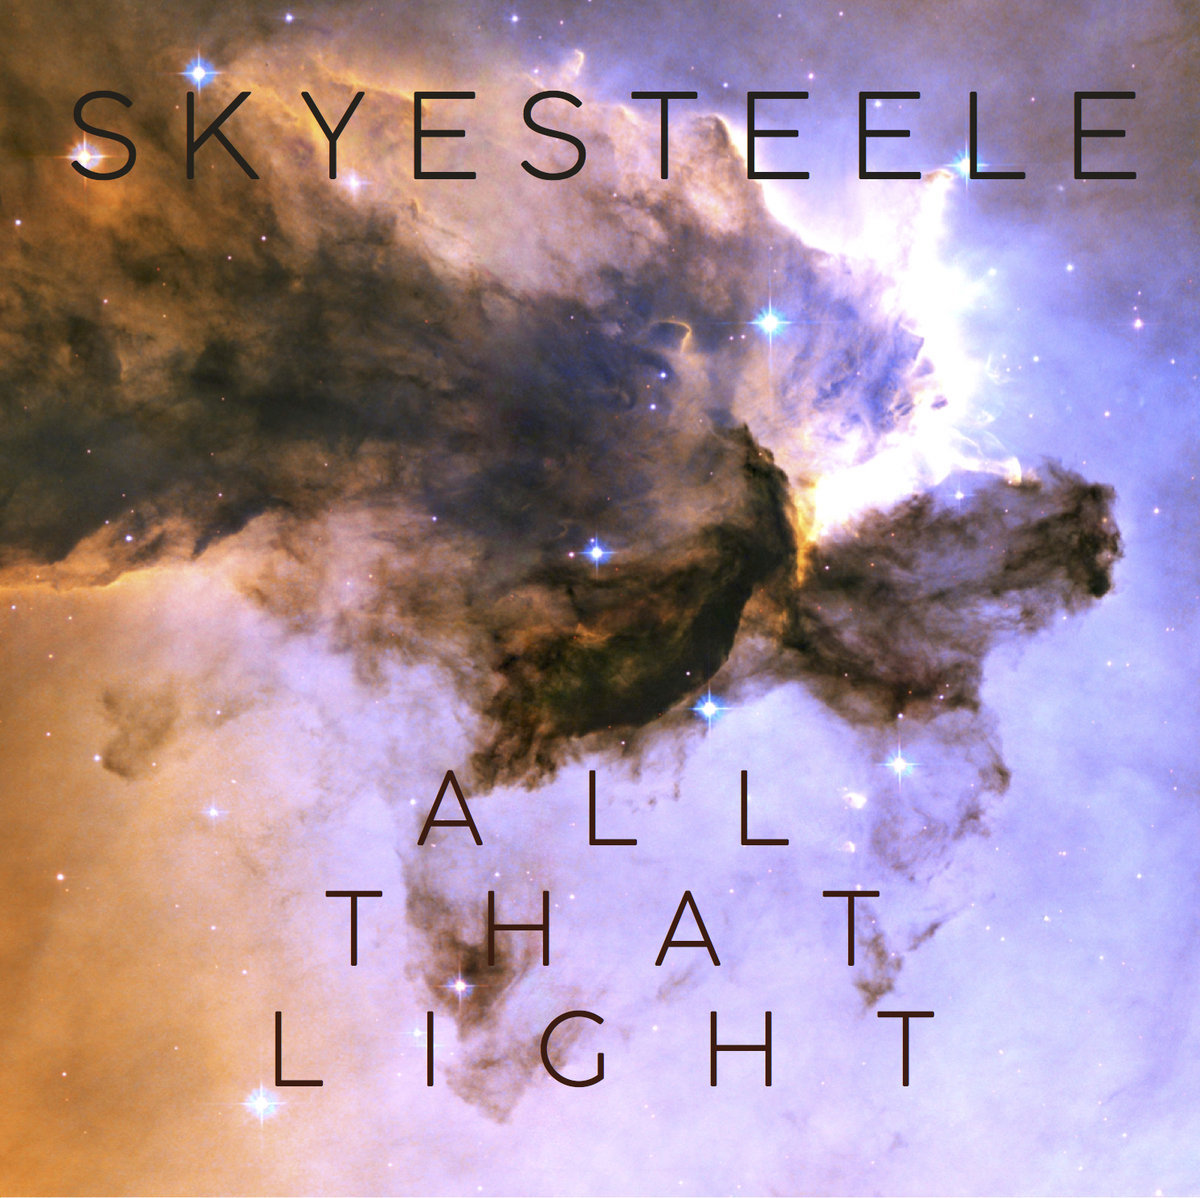 a1226953751 10 Skye Steele premieres new album All That Light: Stream